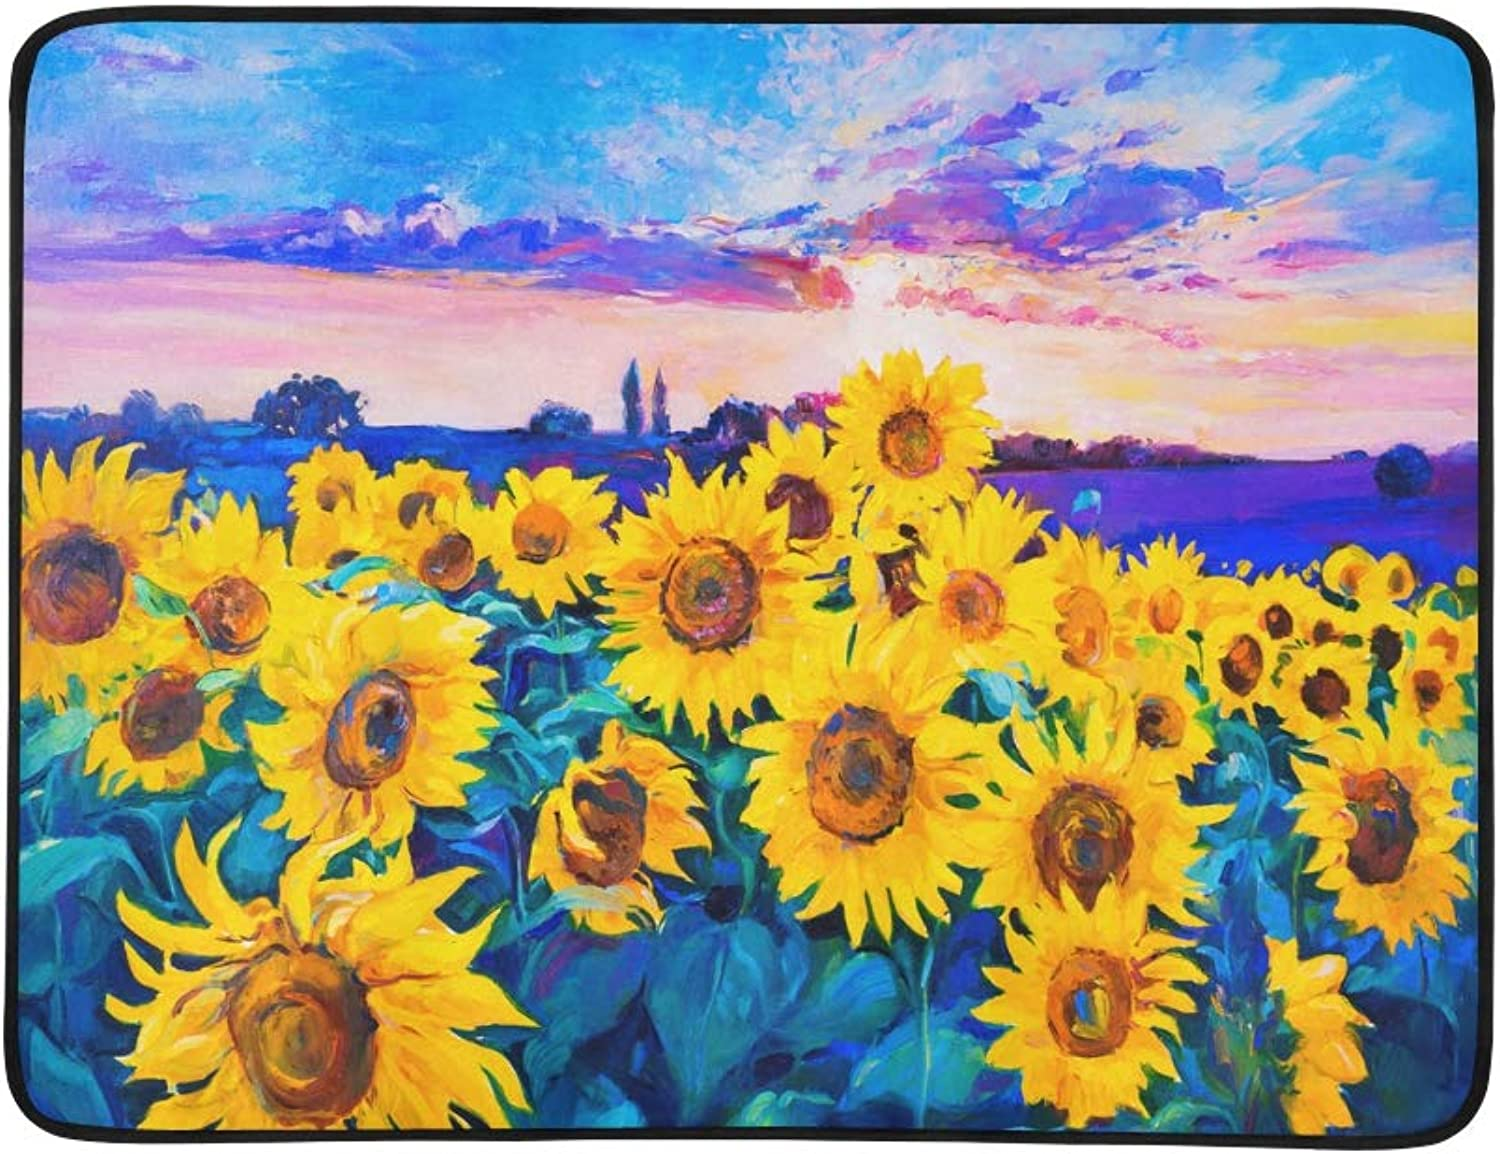 Yellow and Beautiful Sunflowers Field Pattern Portable and Foldable Blanket Mat 60x78 Inch Handy Mat for Camping Picnic Beach Indoor Outdoor Travel